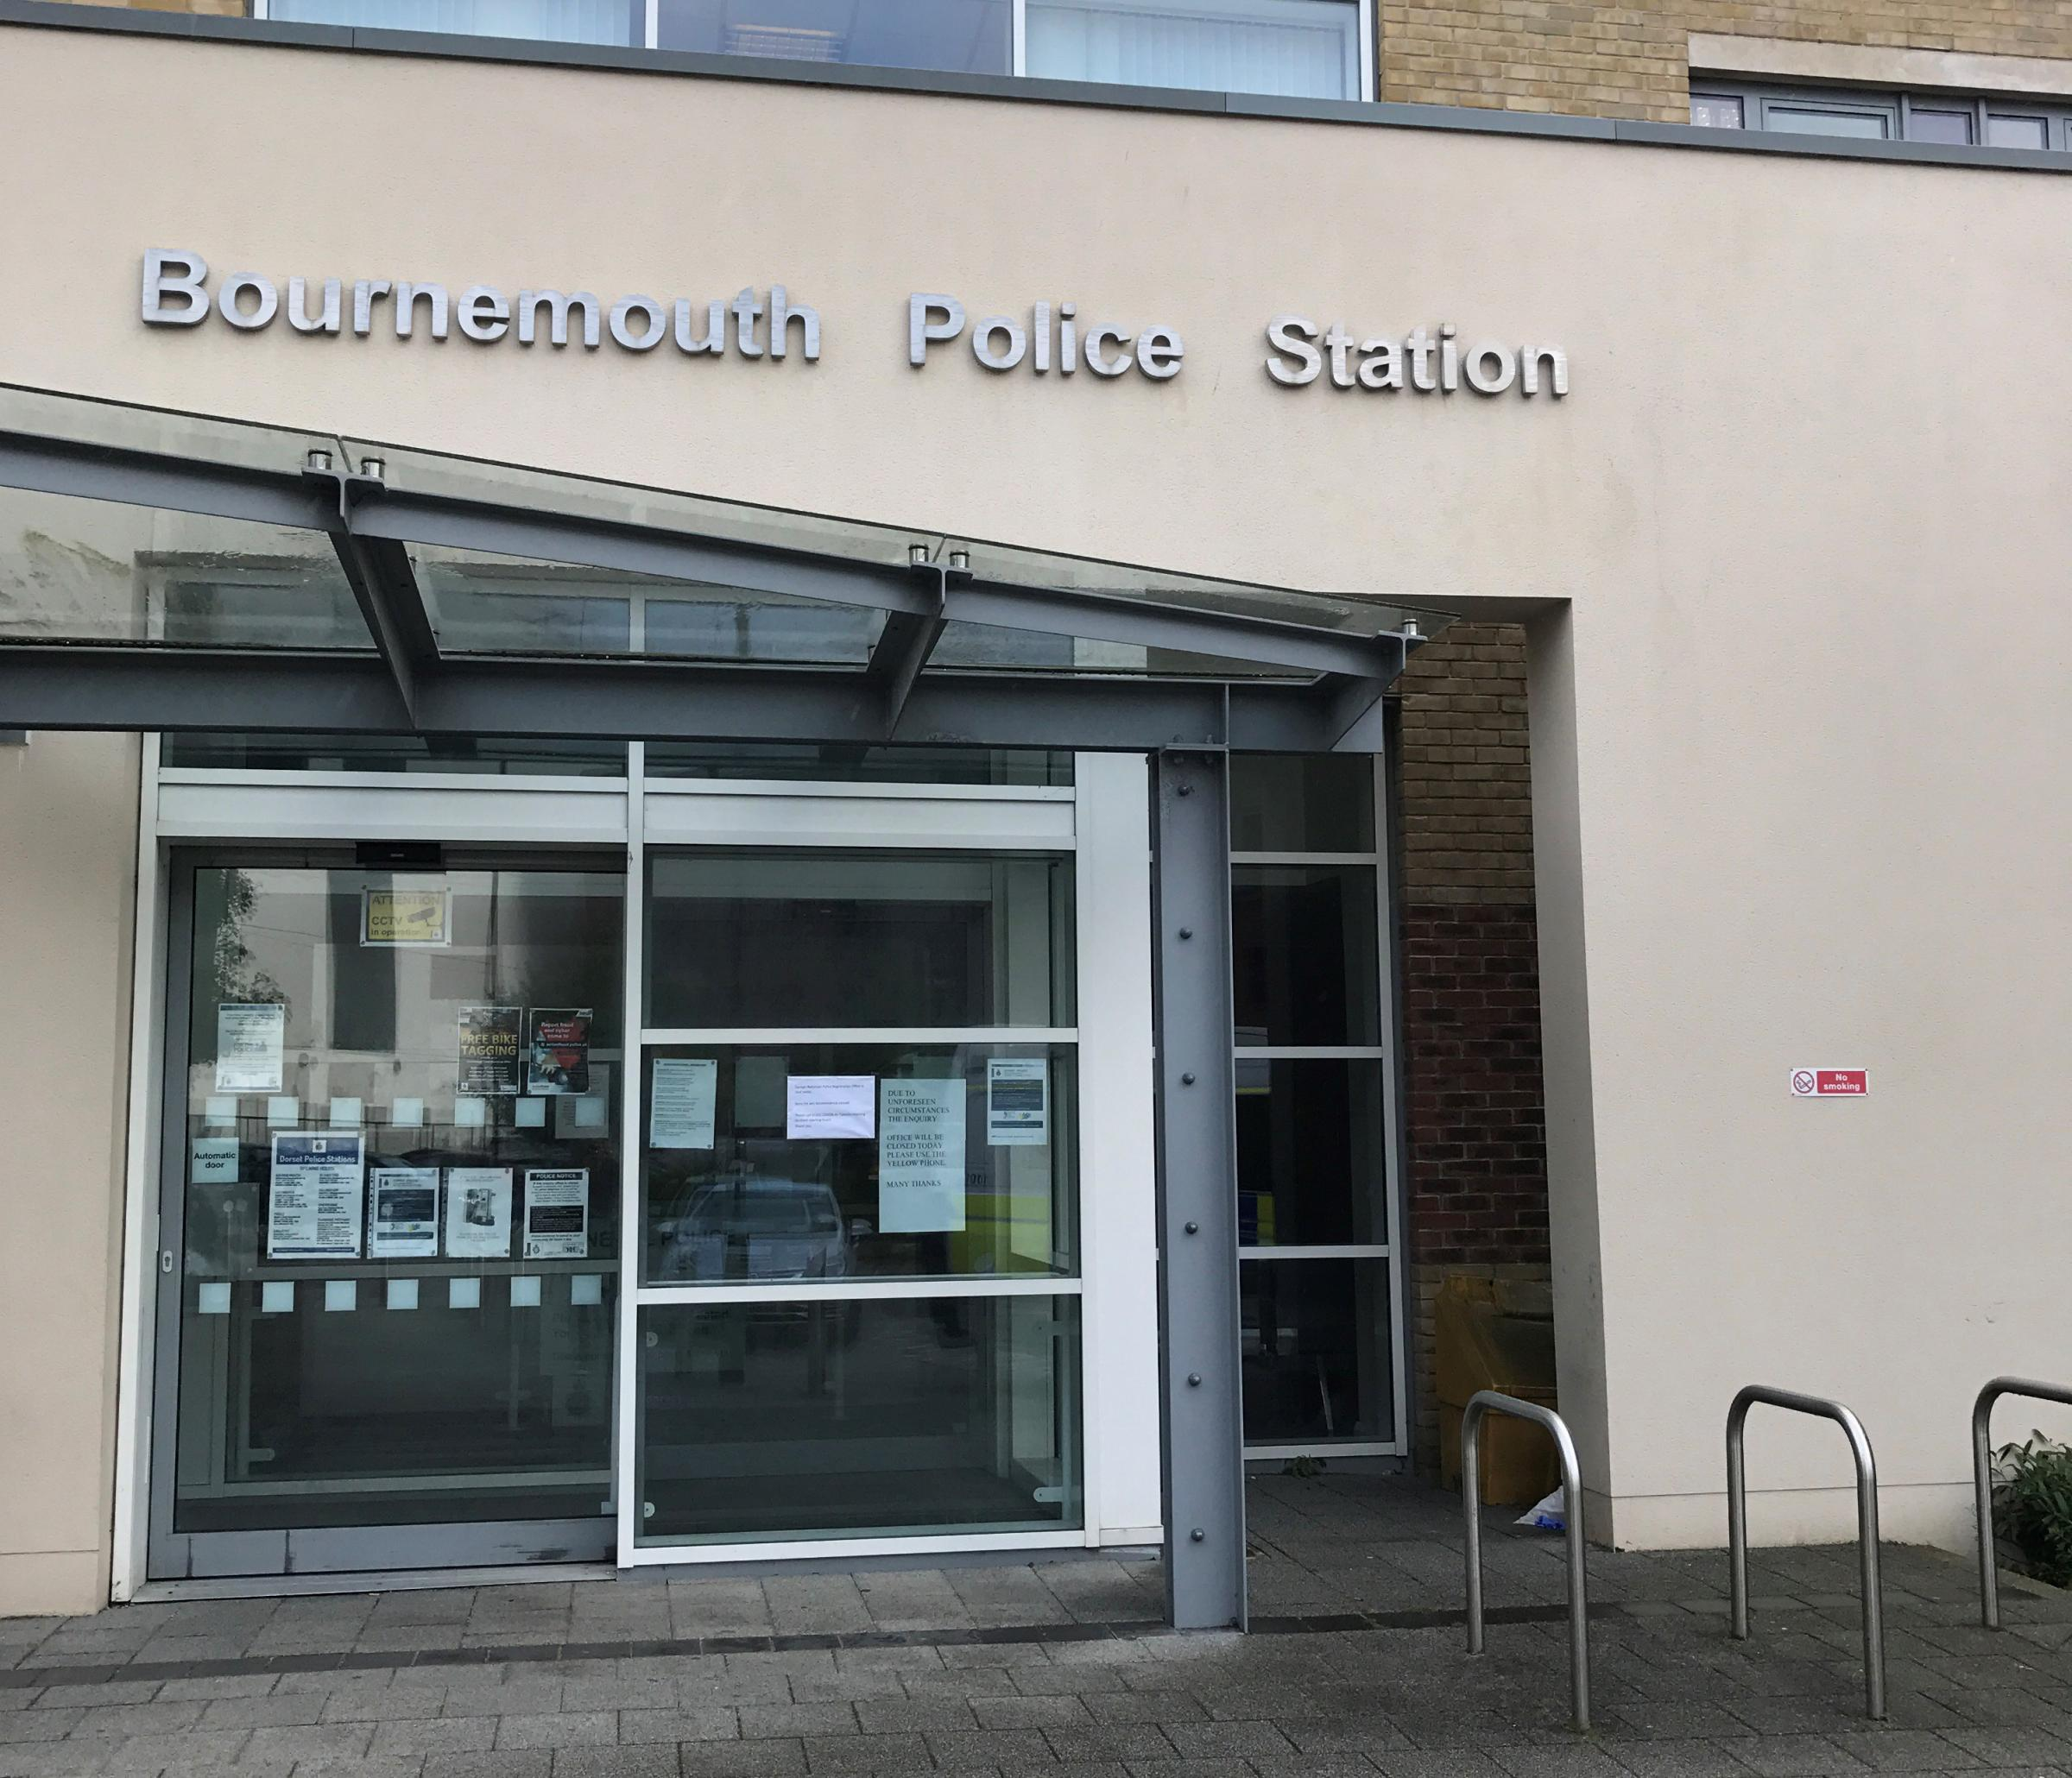 Bournemouth Police Station